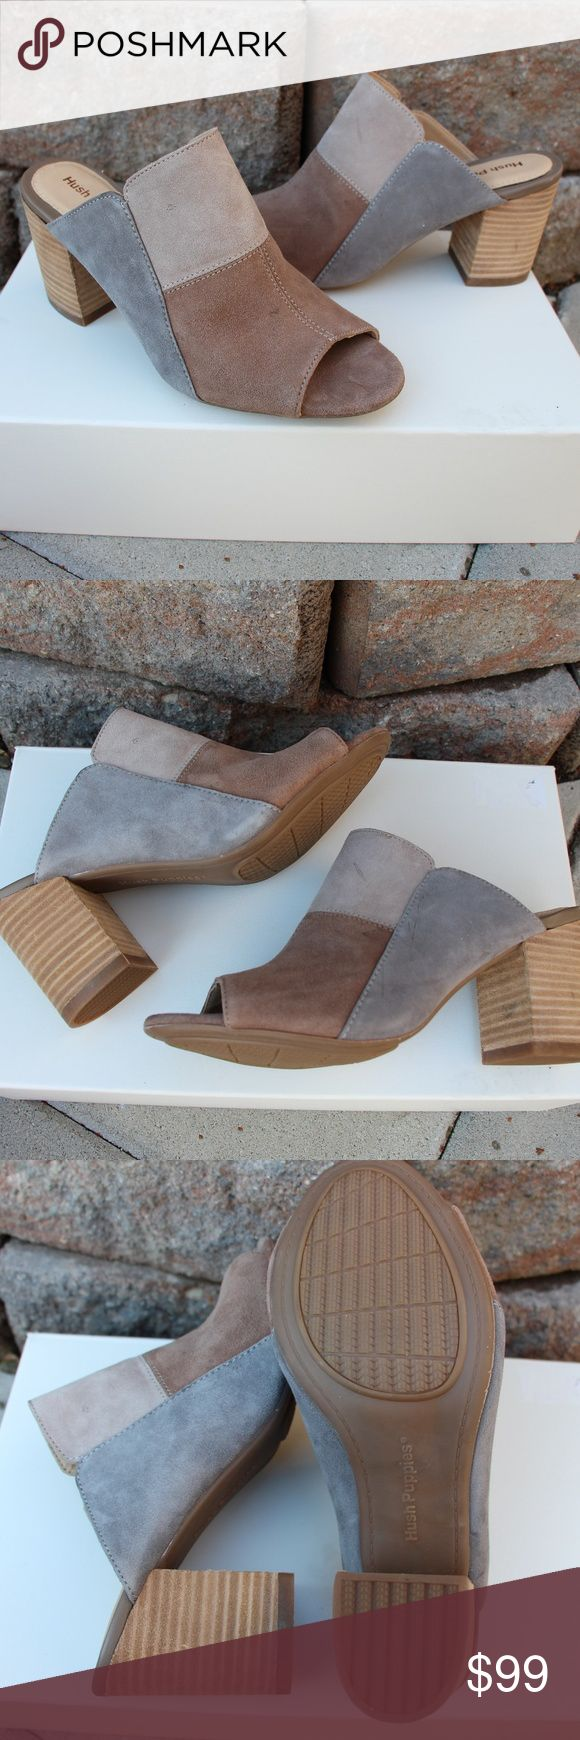 Suede Block Heeled Mules-Sandals Hush Puppies patch design suede heel, clog, mule, sandal creme, grey, and light brown colors block heels, super confrotable *NEW- never worn *imperfections shown in last 2 pictures Hush Puppies Shoes Mules & Clogs